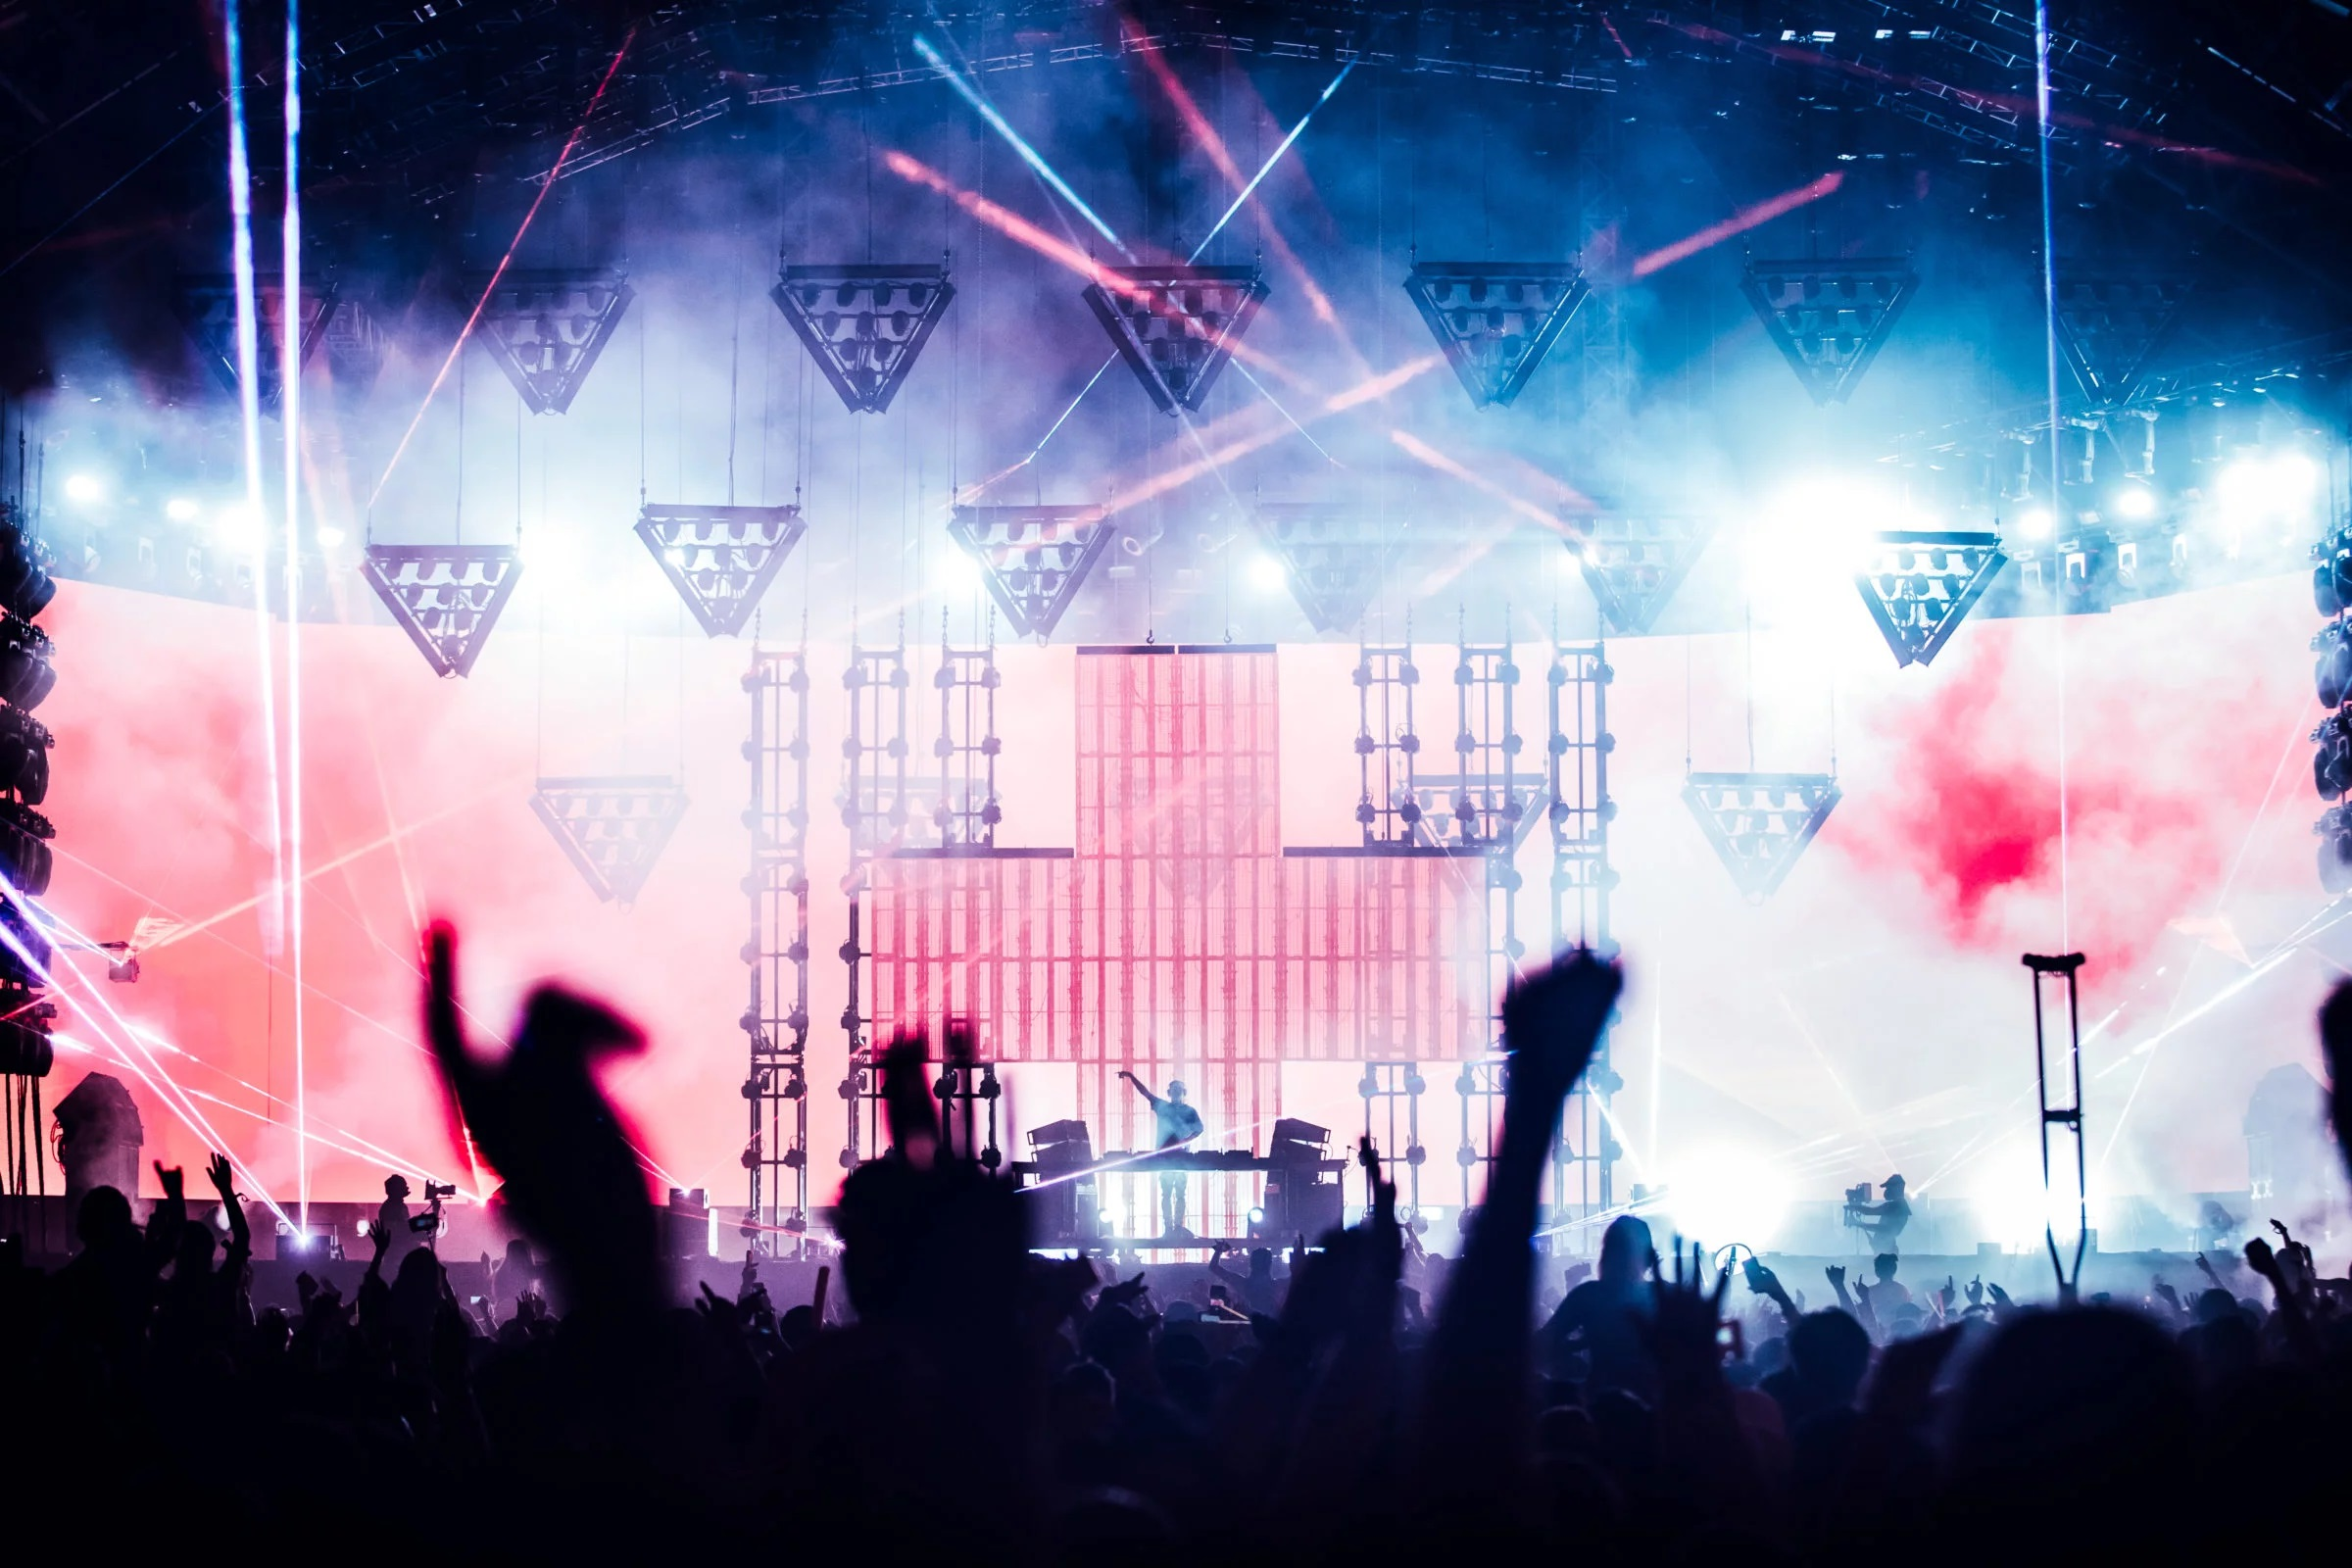 SEE THE COACHELLA 2019 SET TIMES | Your EDM